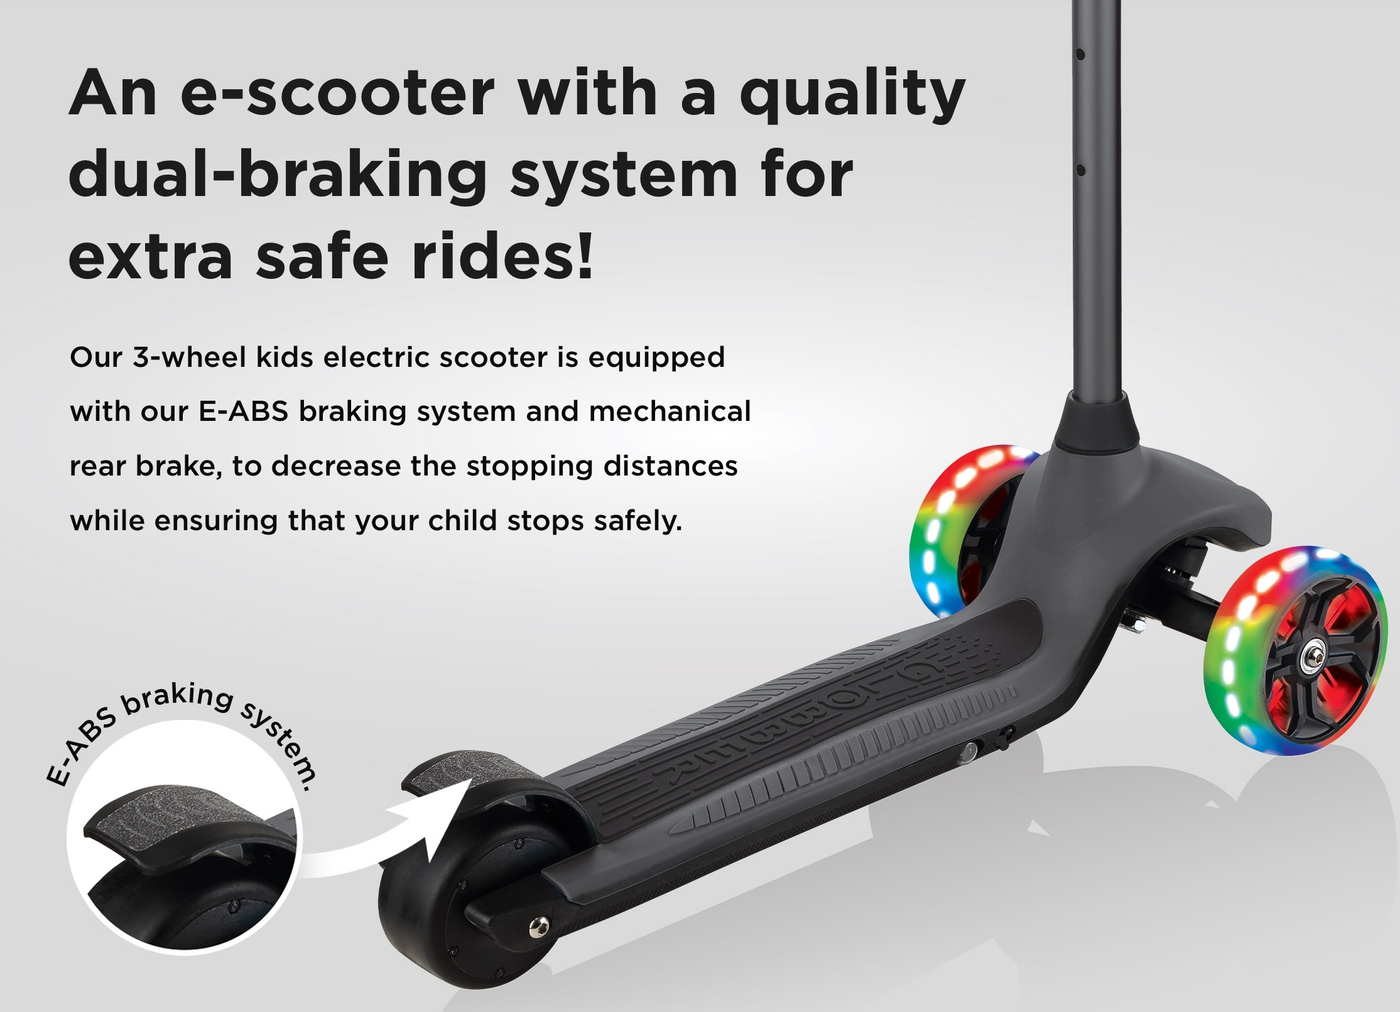 An e-scooter with a quality dual-braking system for extra safe rides!